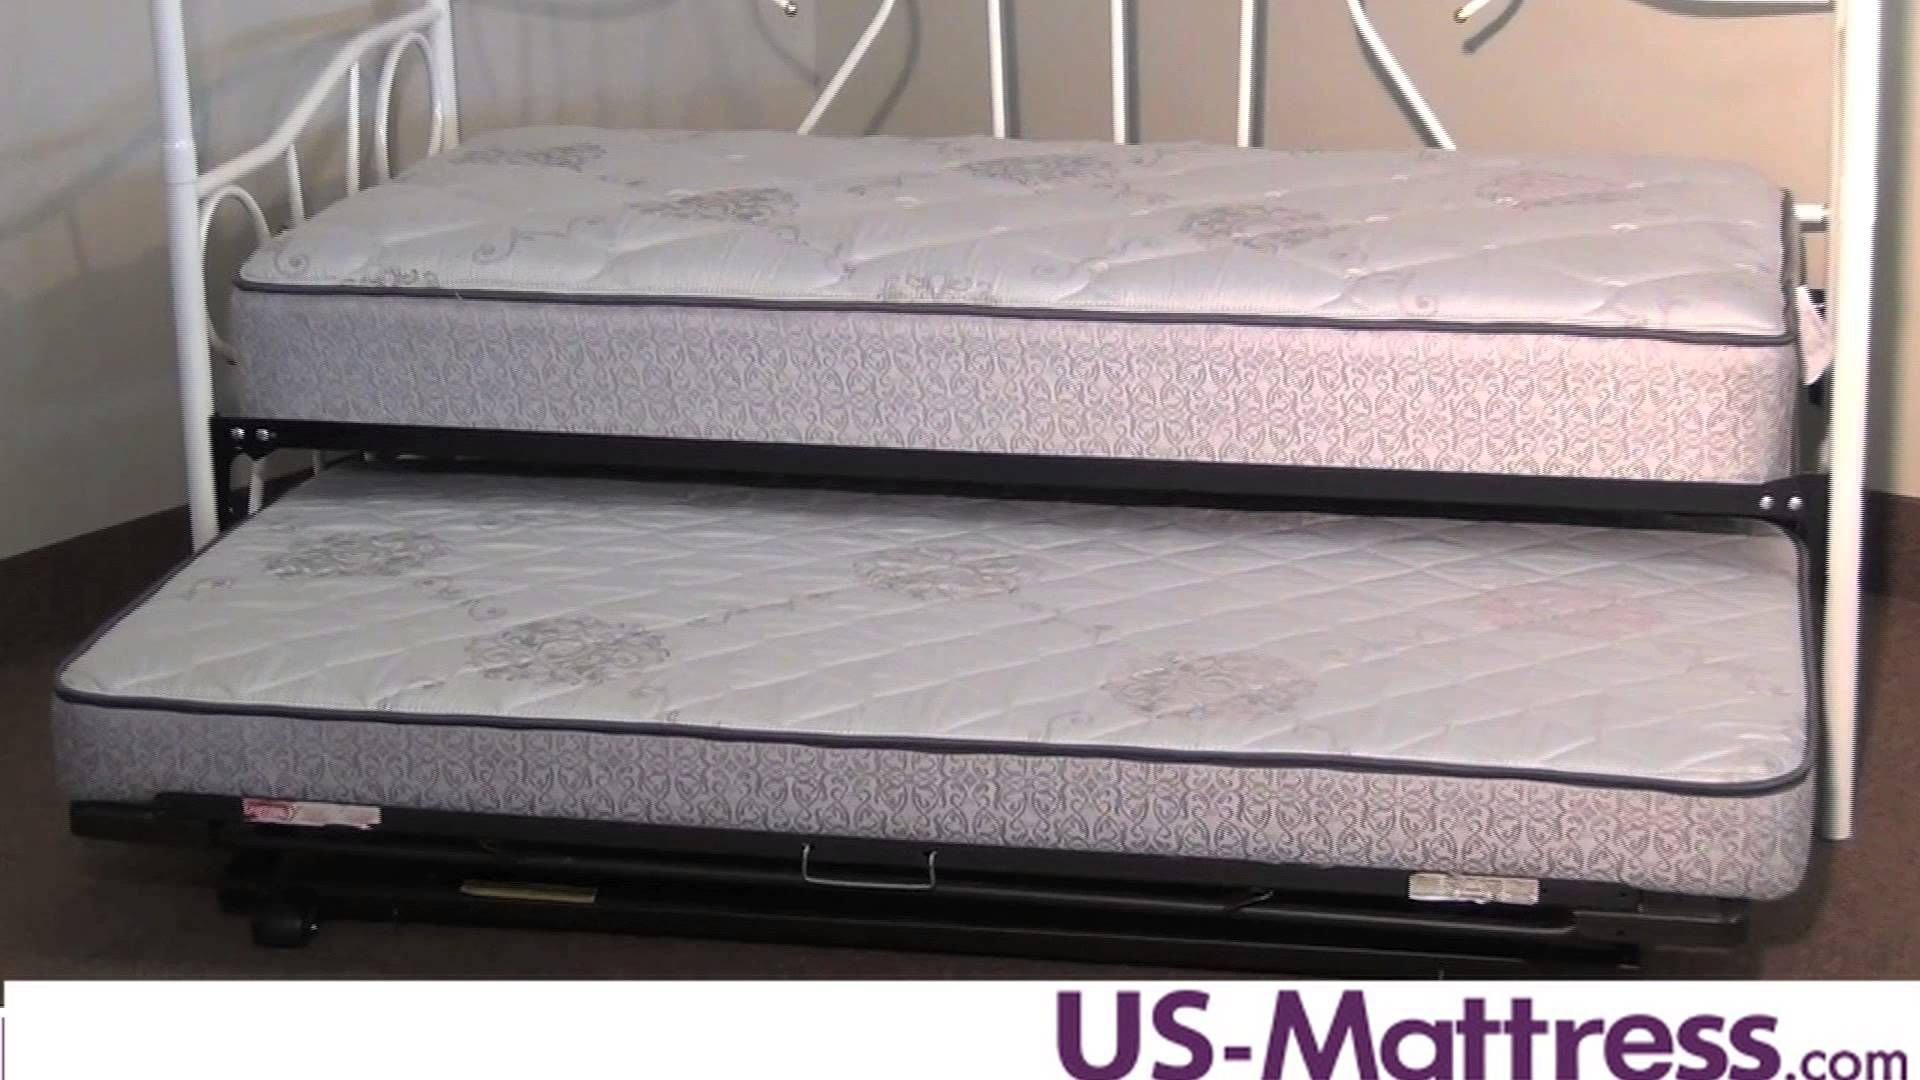 What size mattress will fit on a Daybed or Trundle Bed